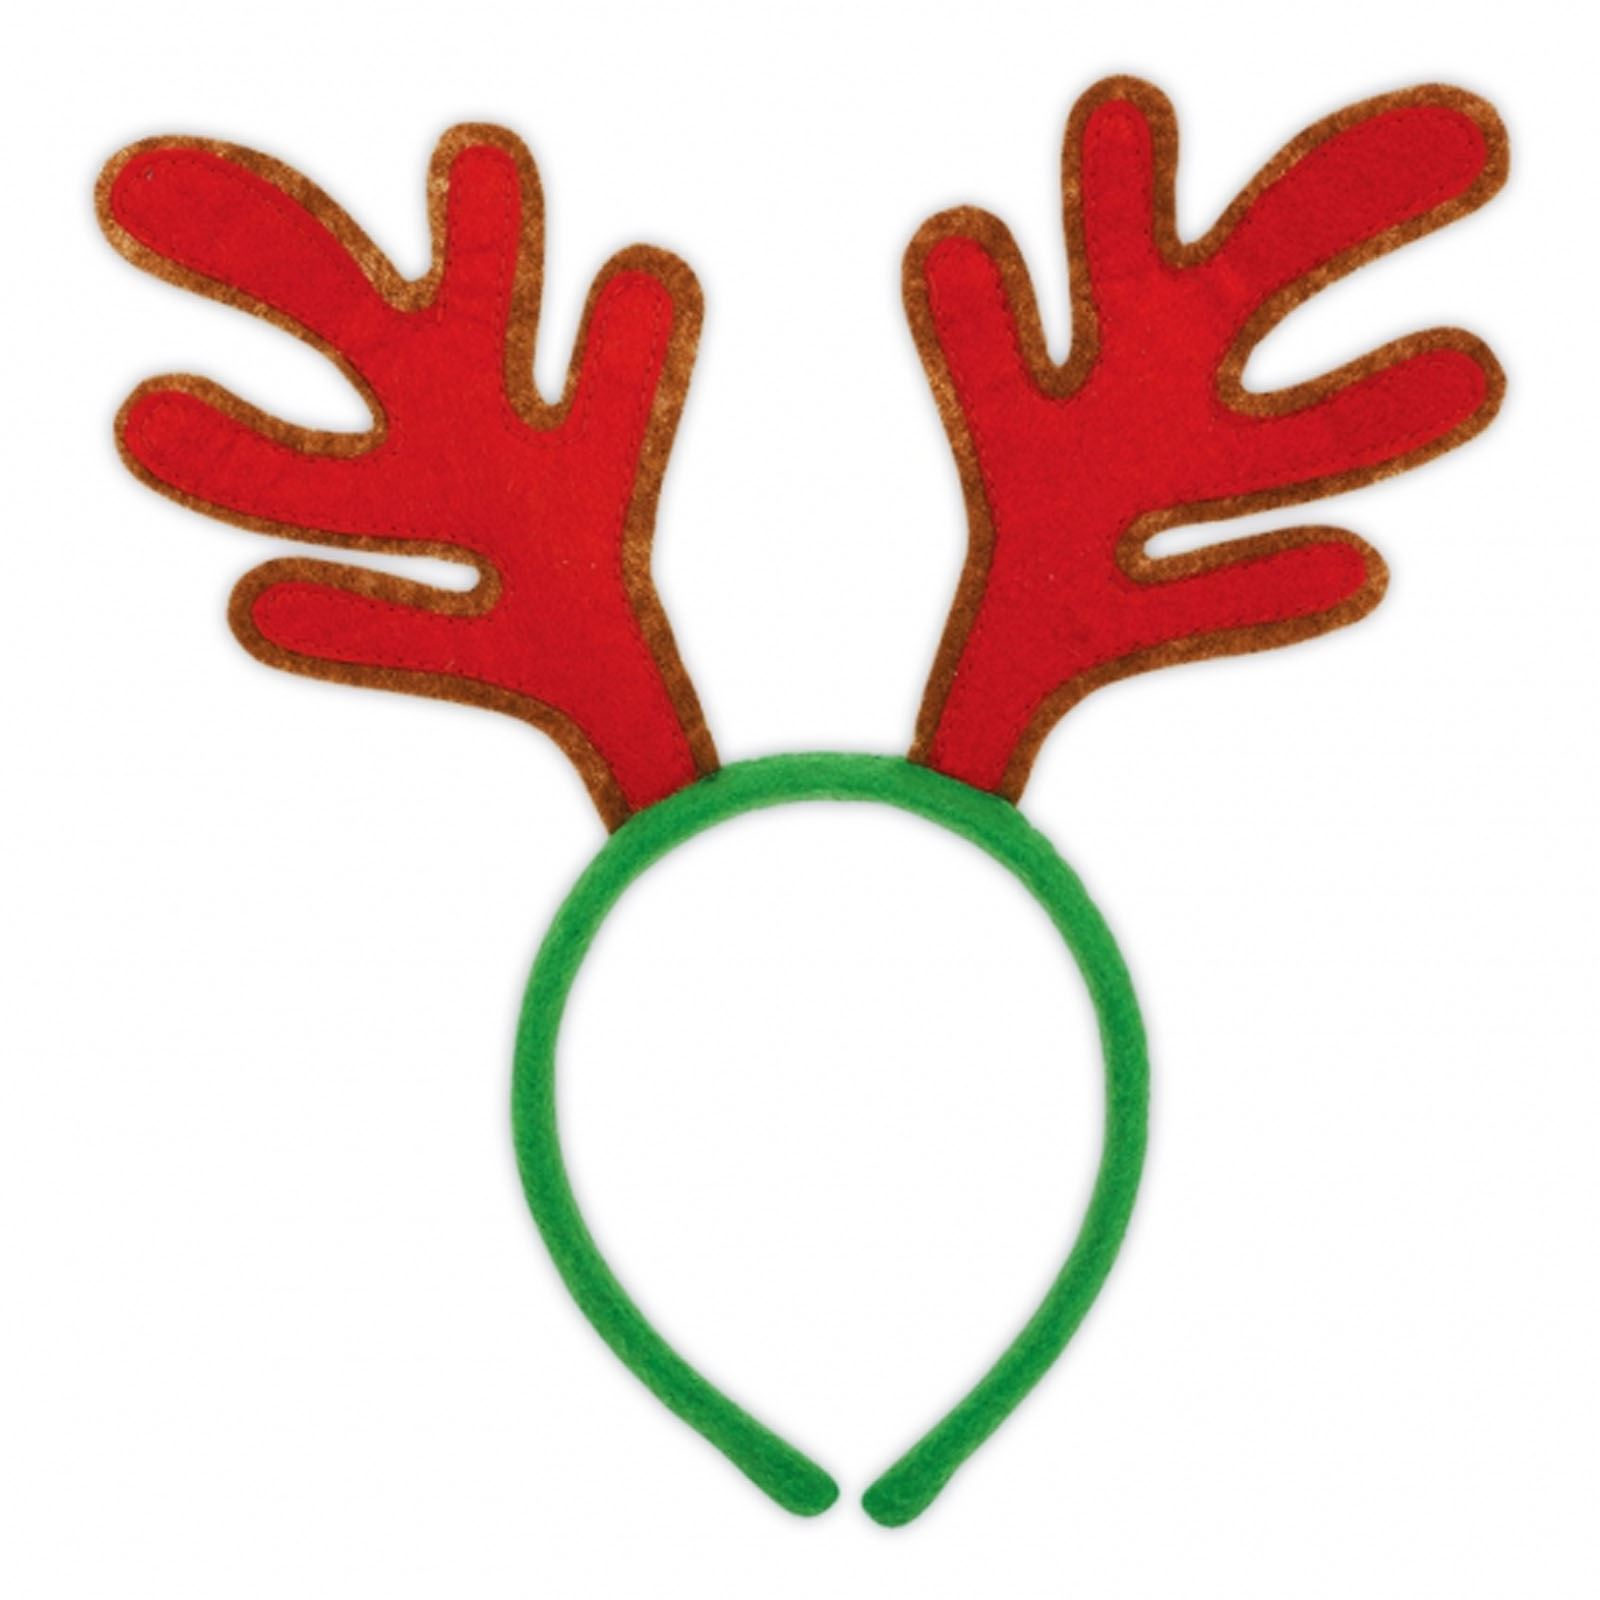 Christmas Headband Png.Details About Reindeer Rudolph Christmas Xmas Antlers Felt Antler Headband Soft Toy Kids Adult